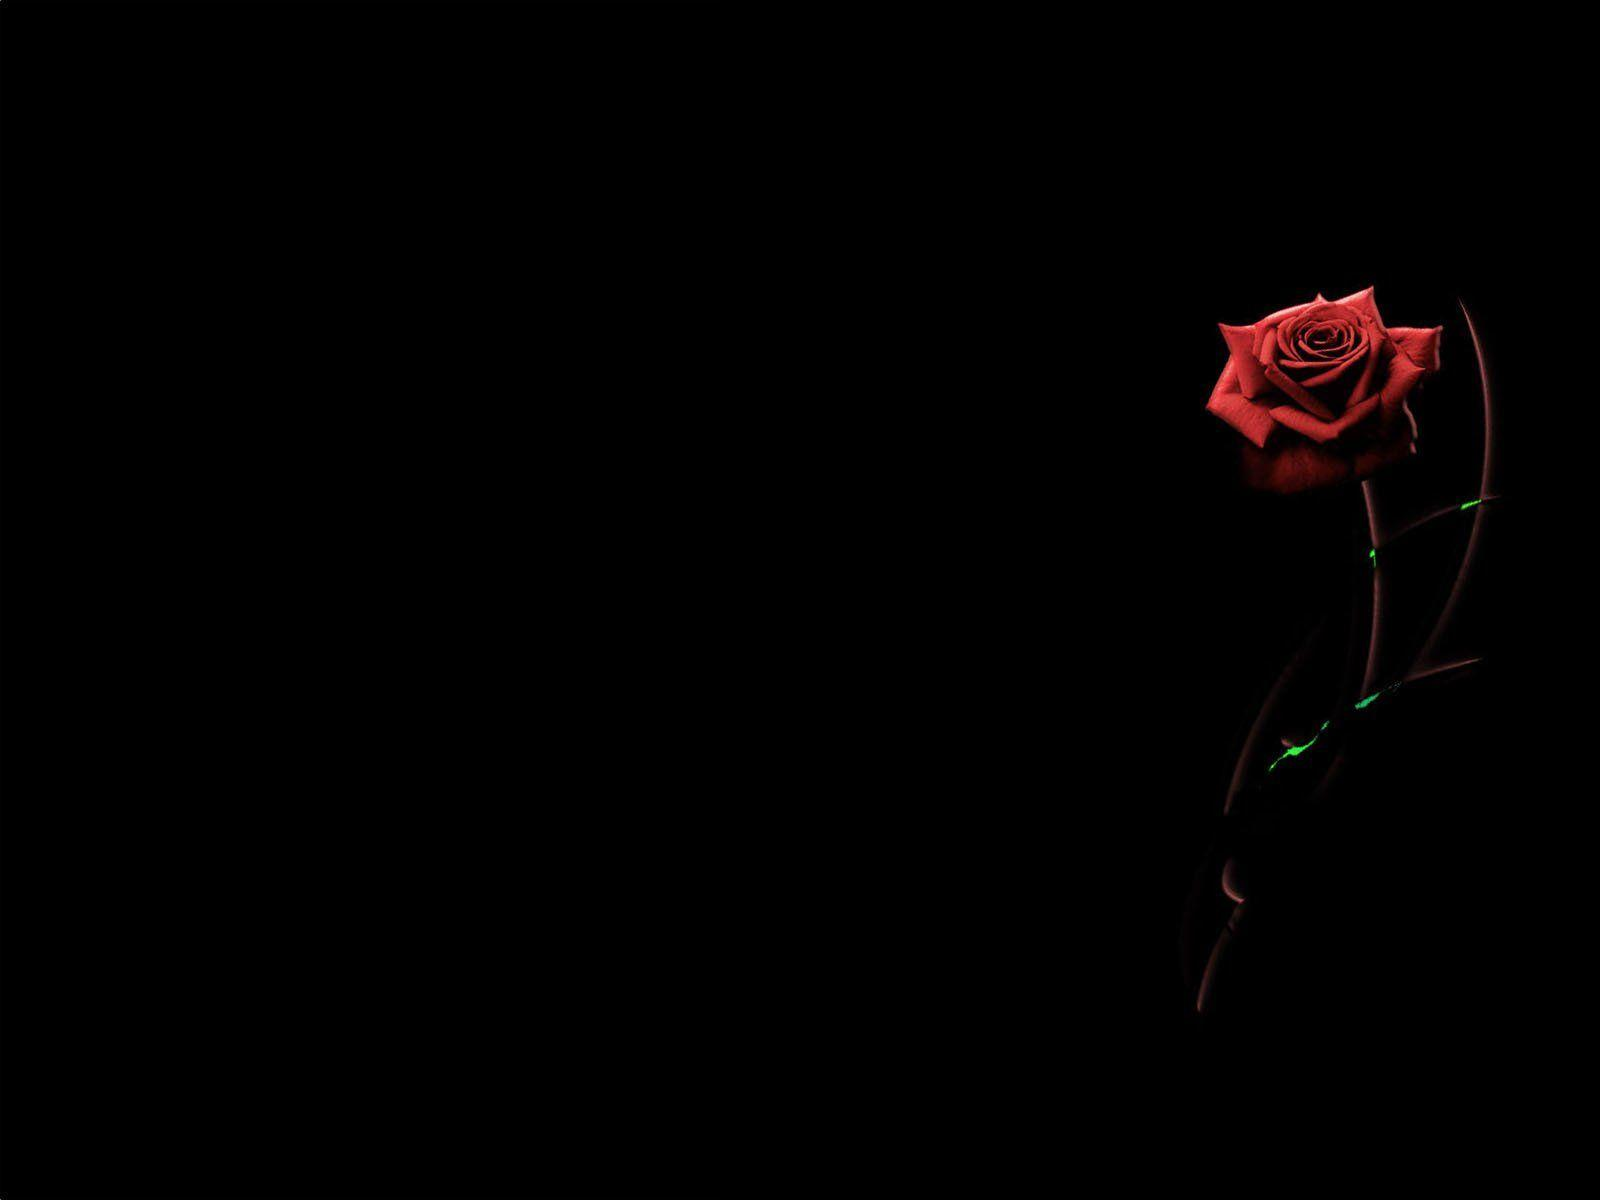 Black And Red Roses Wallpapers Wallpaper Cave